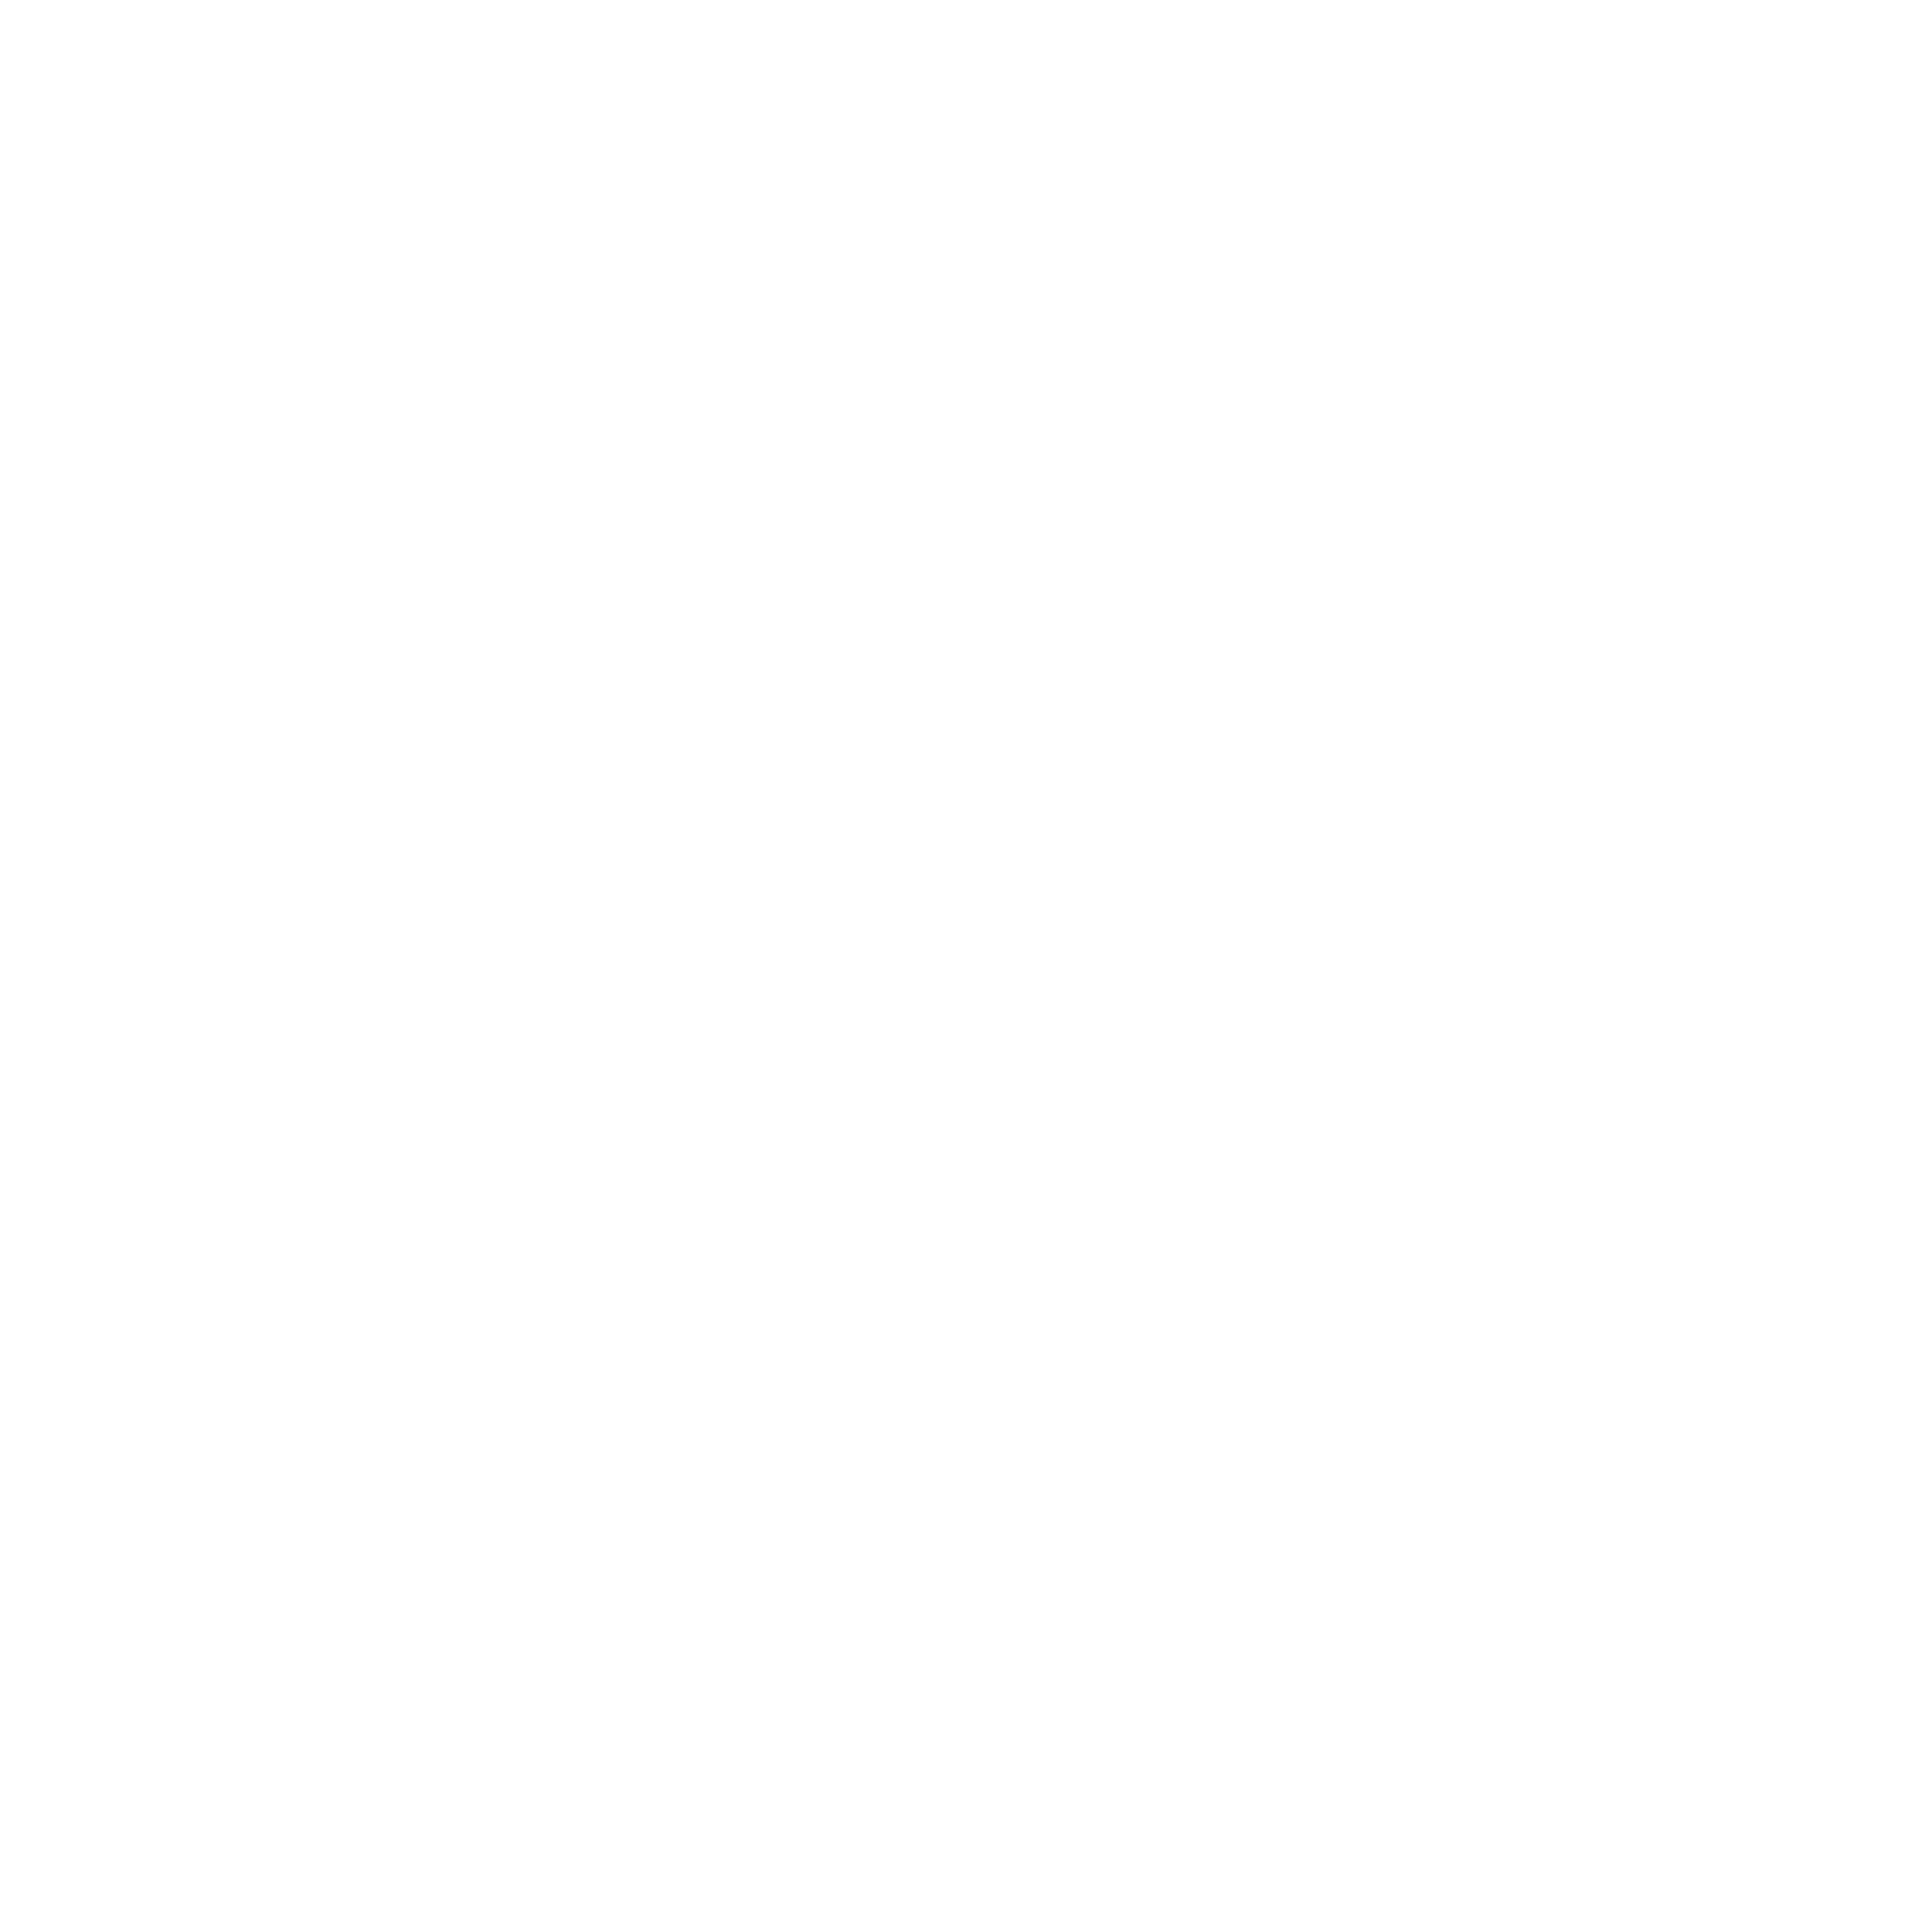 City of Brownwood - Logo White